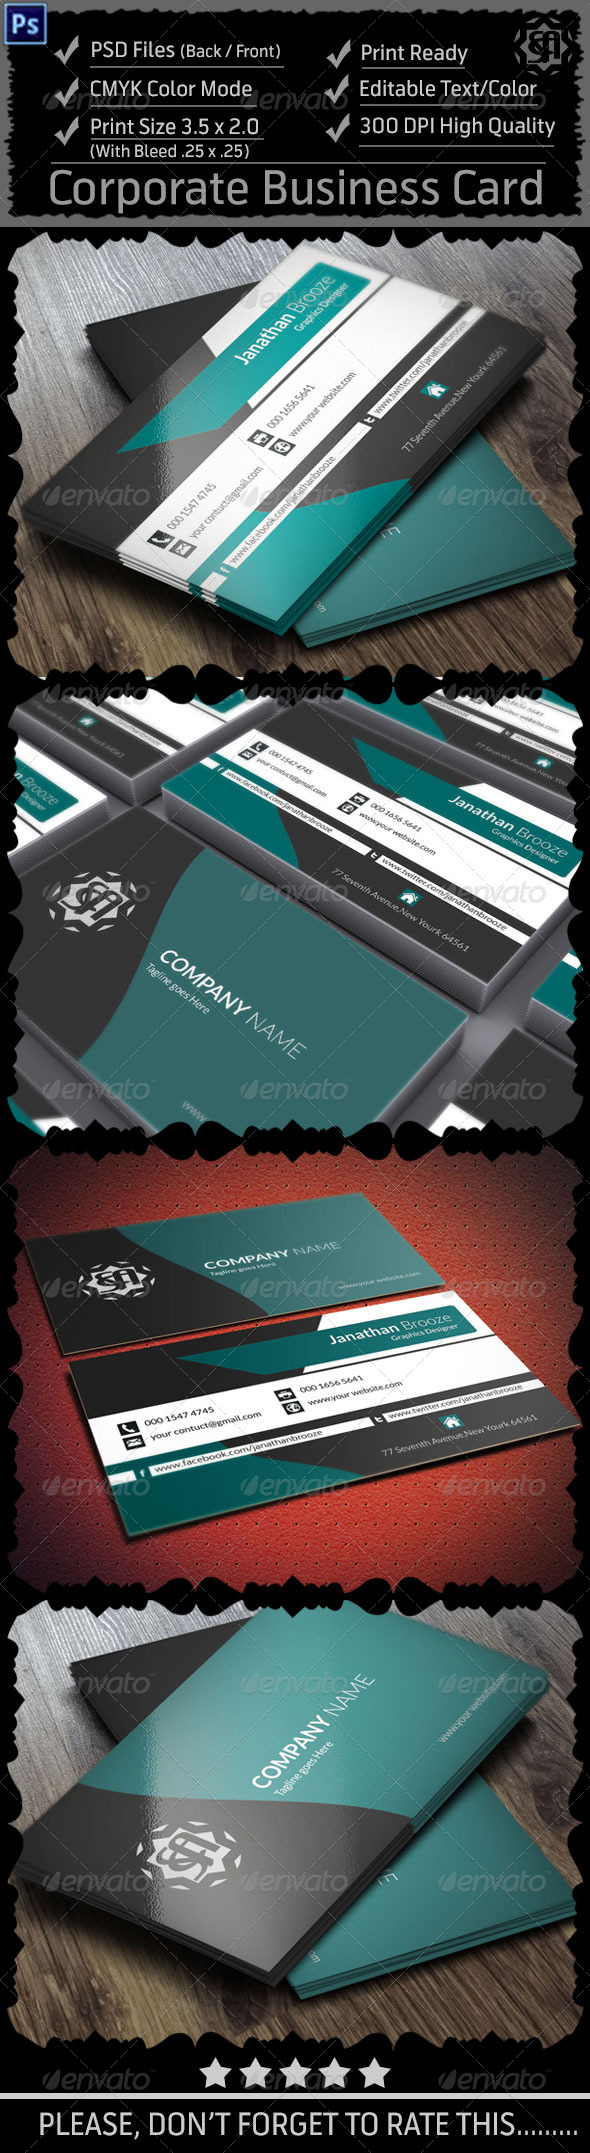 GraphicRiver Corporate Business Card Vol 8 8511386